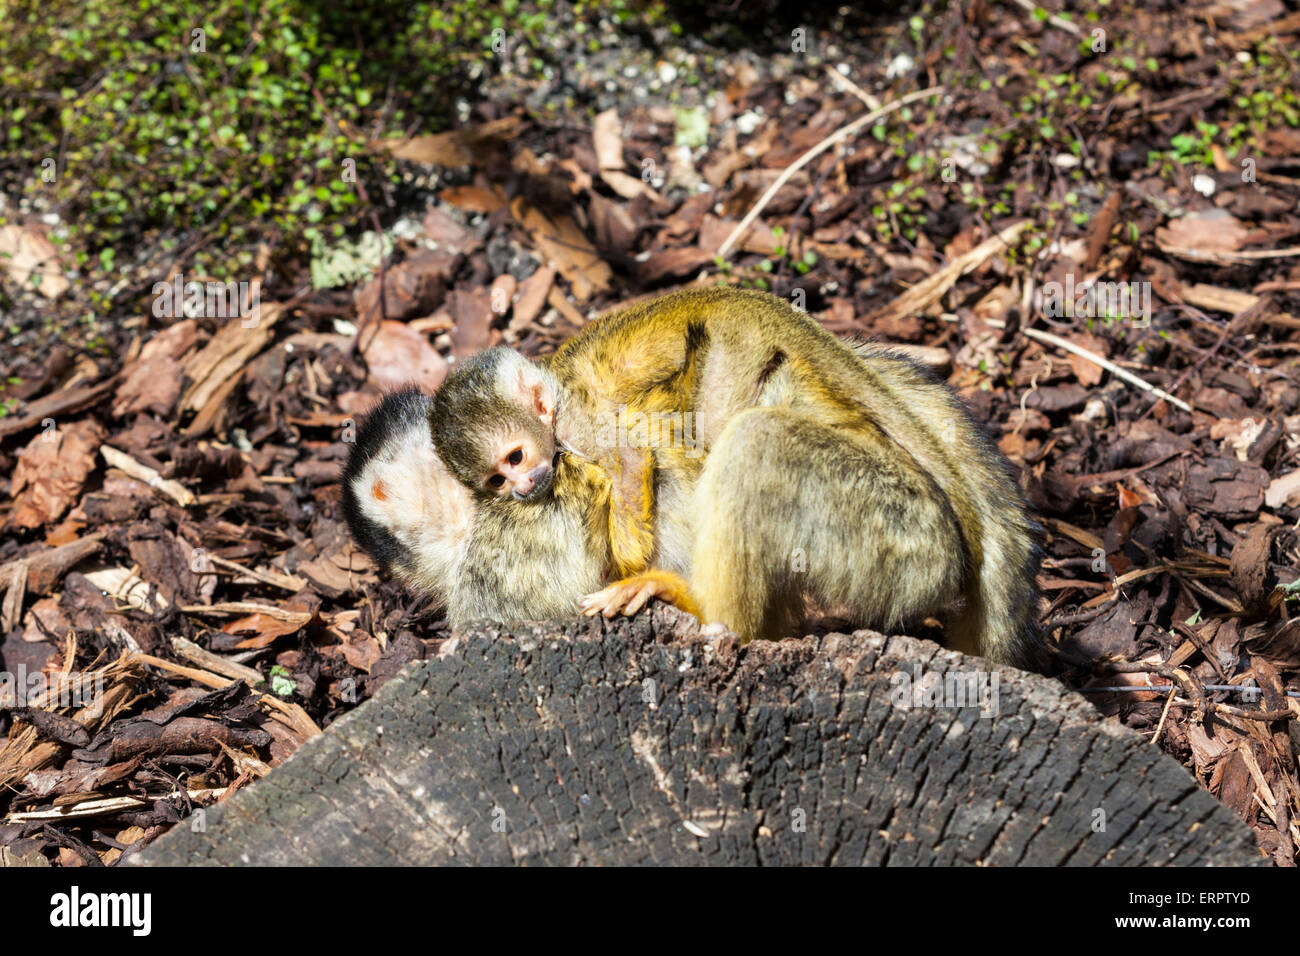 ZSL London Zoo, London, 6th June 2015. One of two new baby black-capped squirrel monkeys makes one of its first - Stock Image